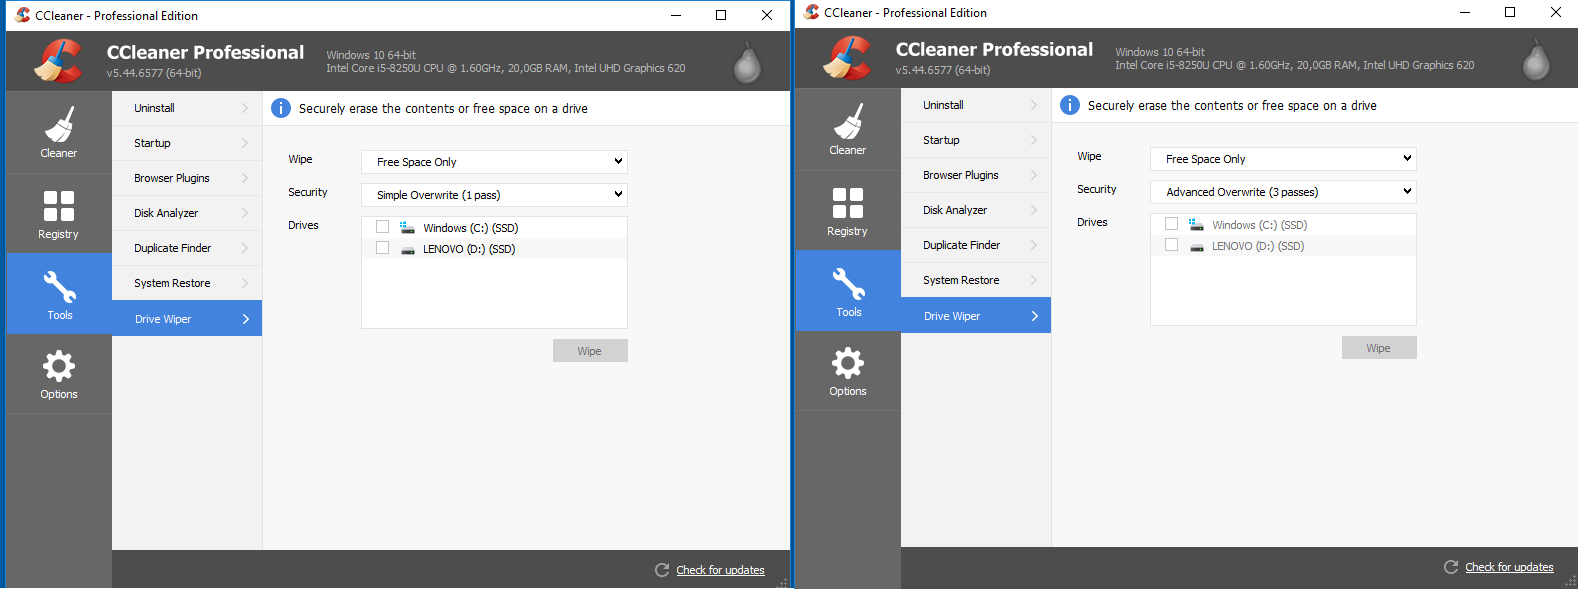 problems with ccleaner and windows 10